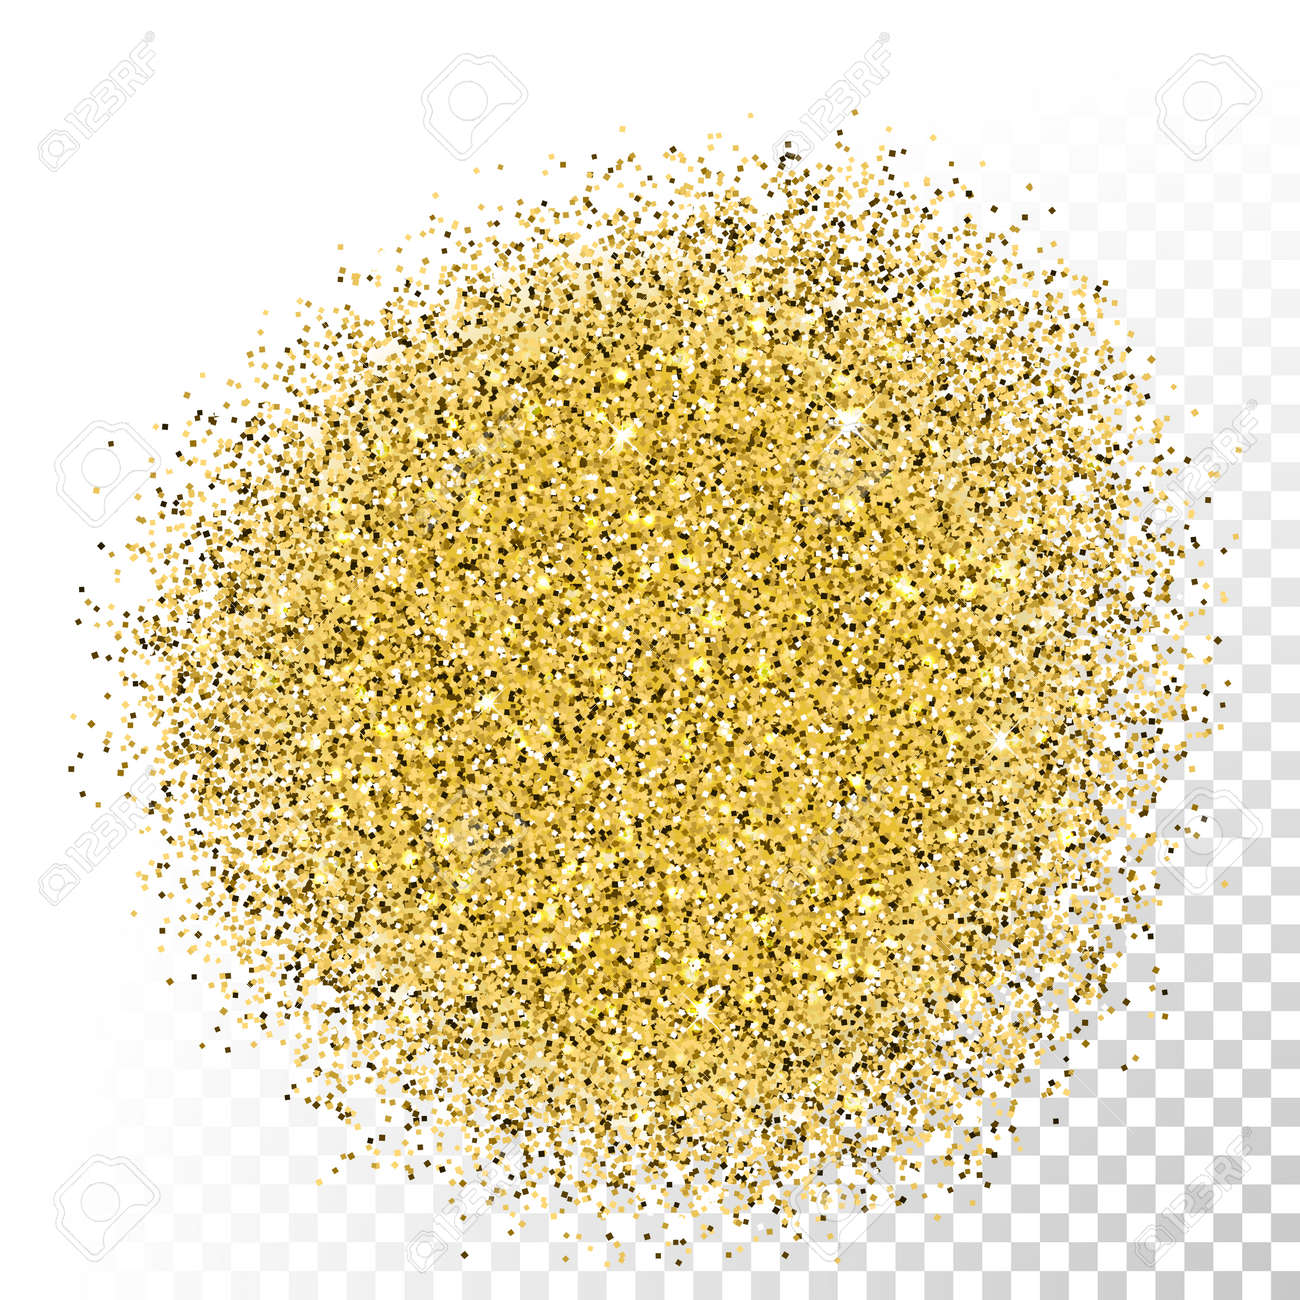 Gold glitter bright vector transparent background golden sparkles - Vector Vector Gold Glitter Texture Gold Sparkles On Transparent Background